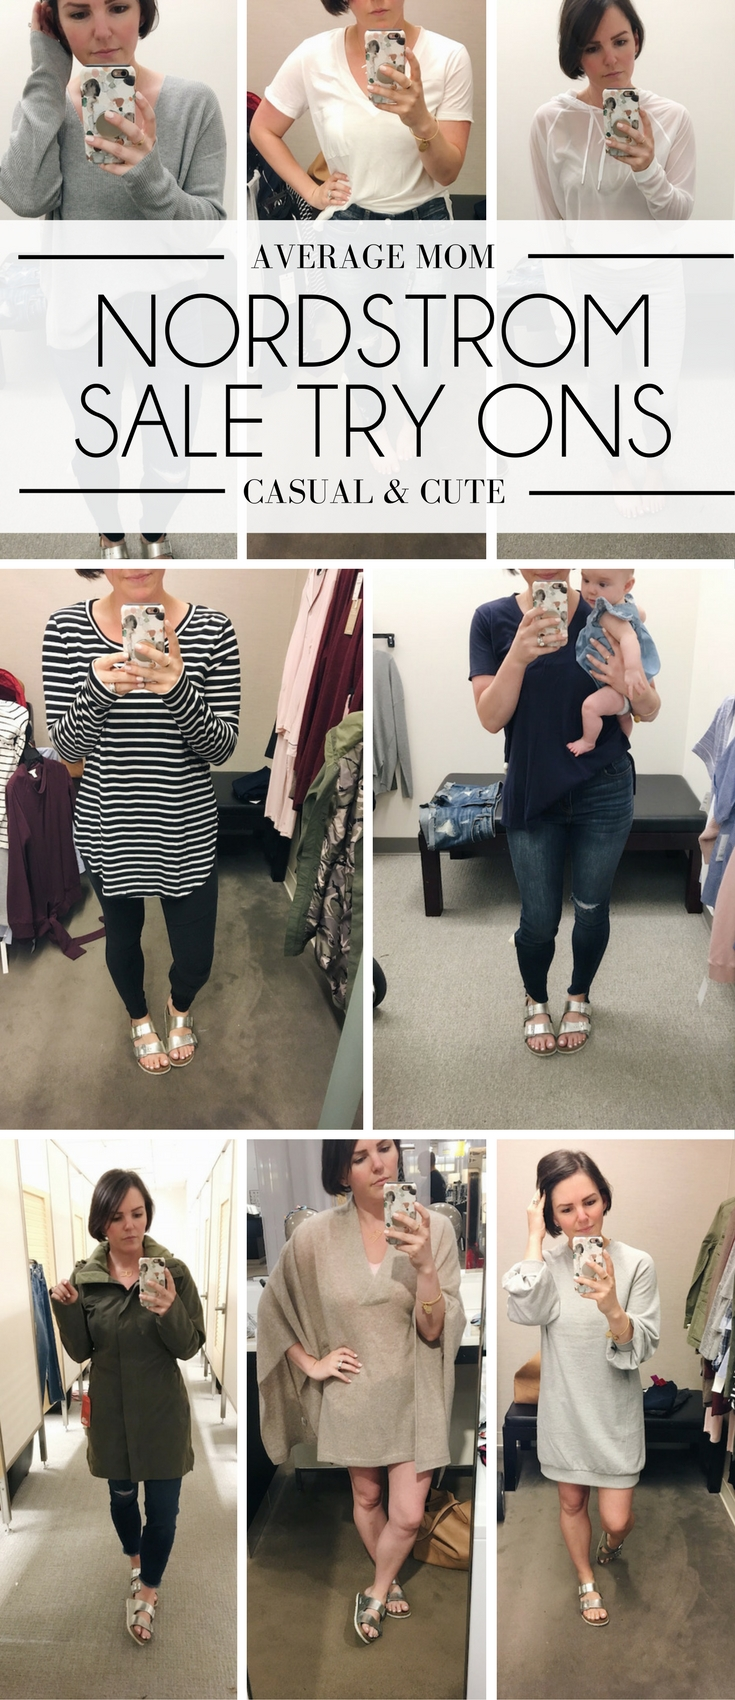 Nordstrom Anniversary Sale Dressing Room Diaries from a mom of three kids - casual, affordable style for the everyday mom